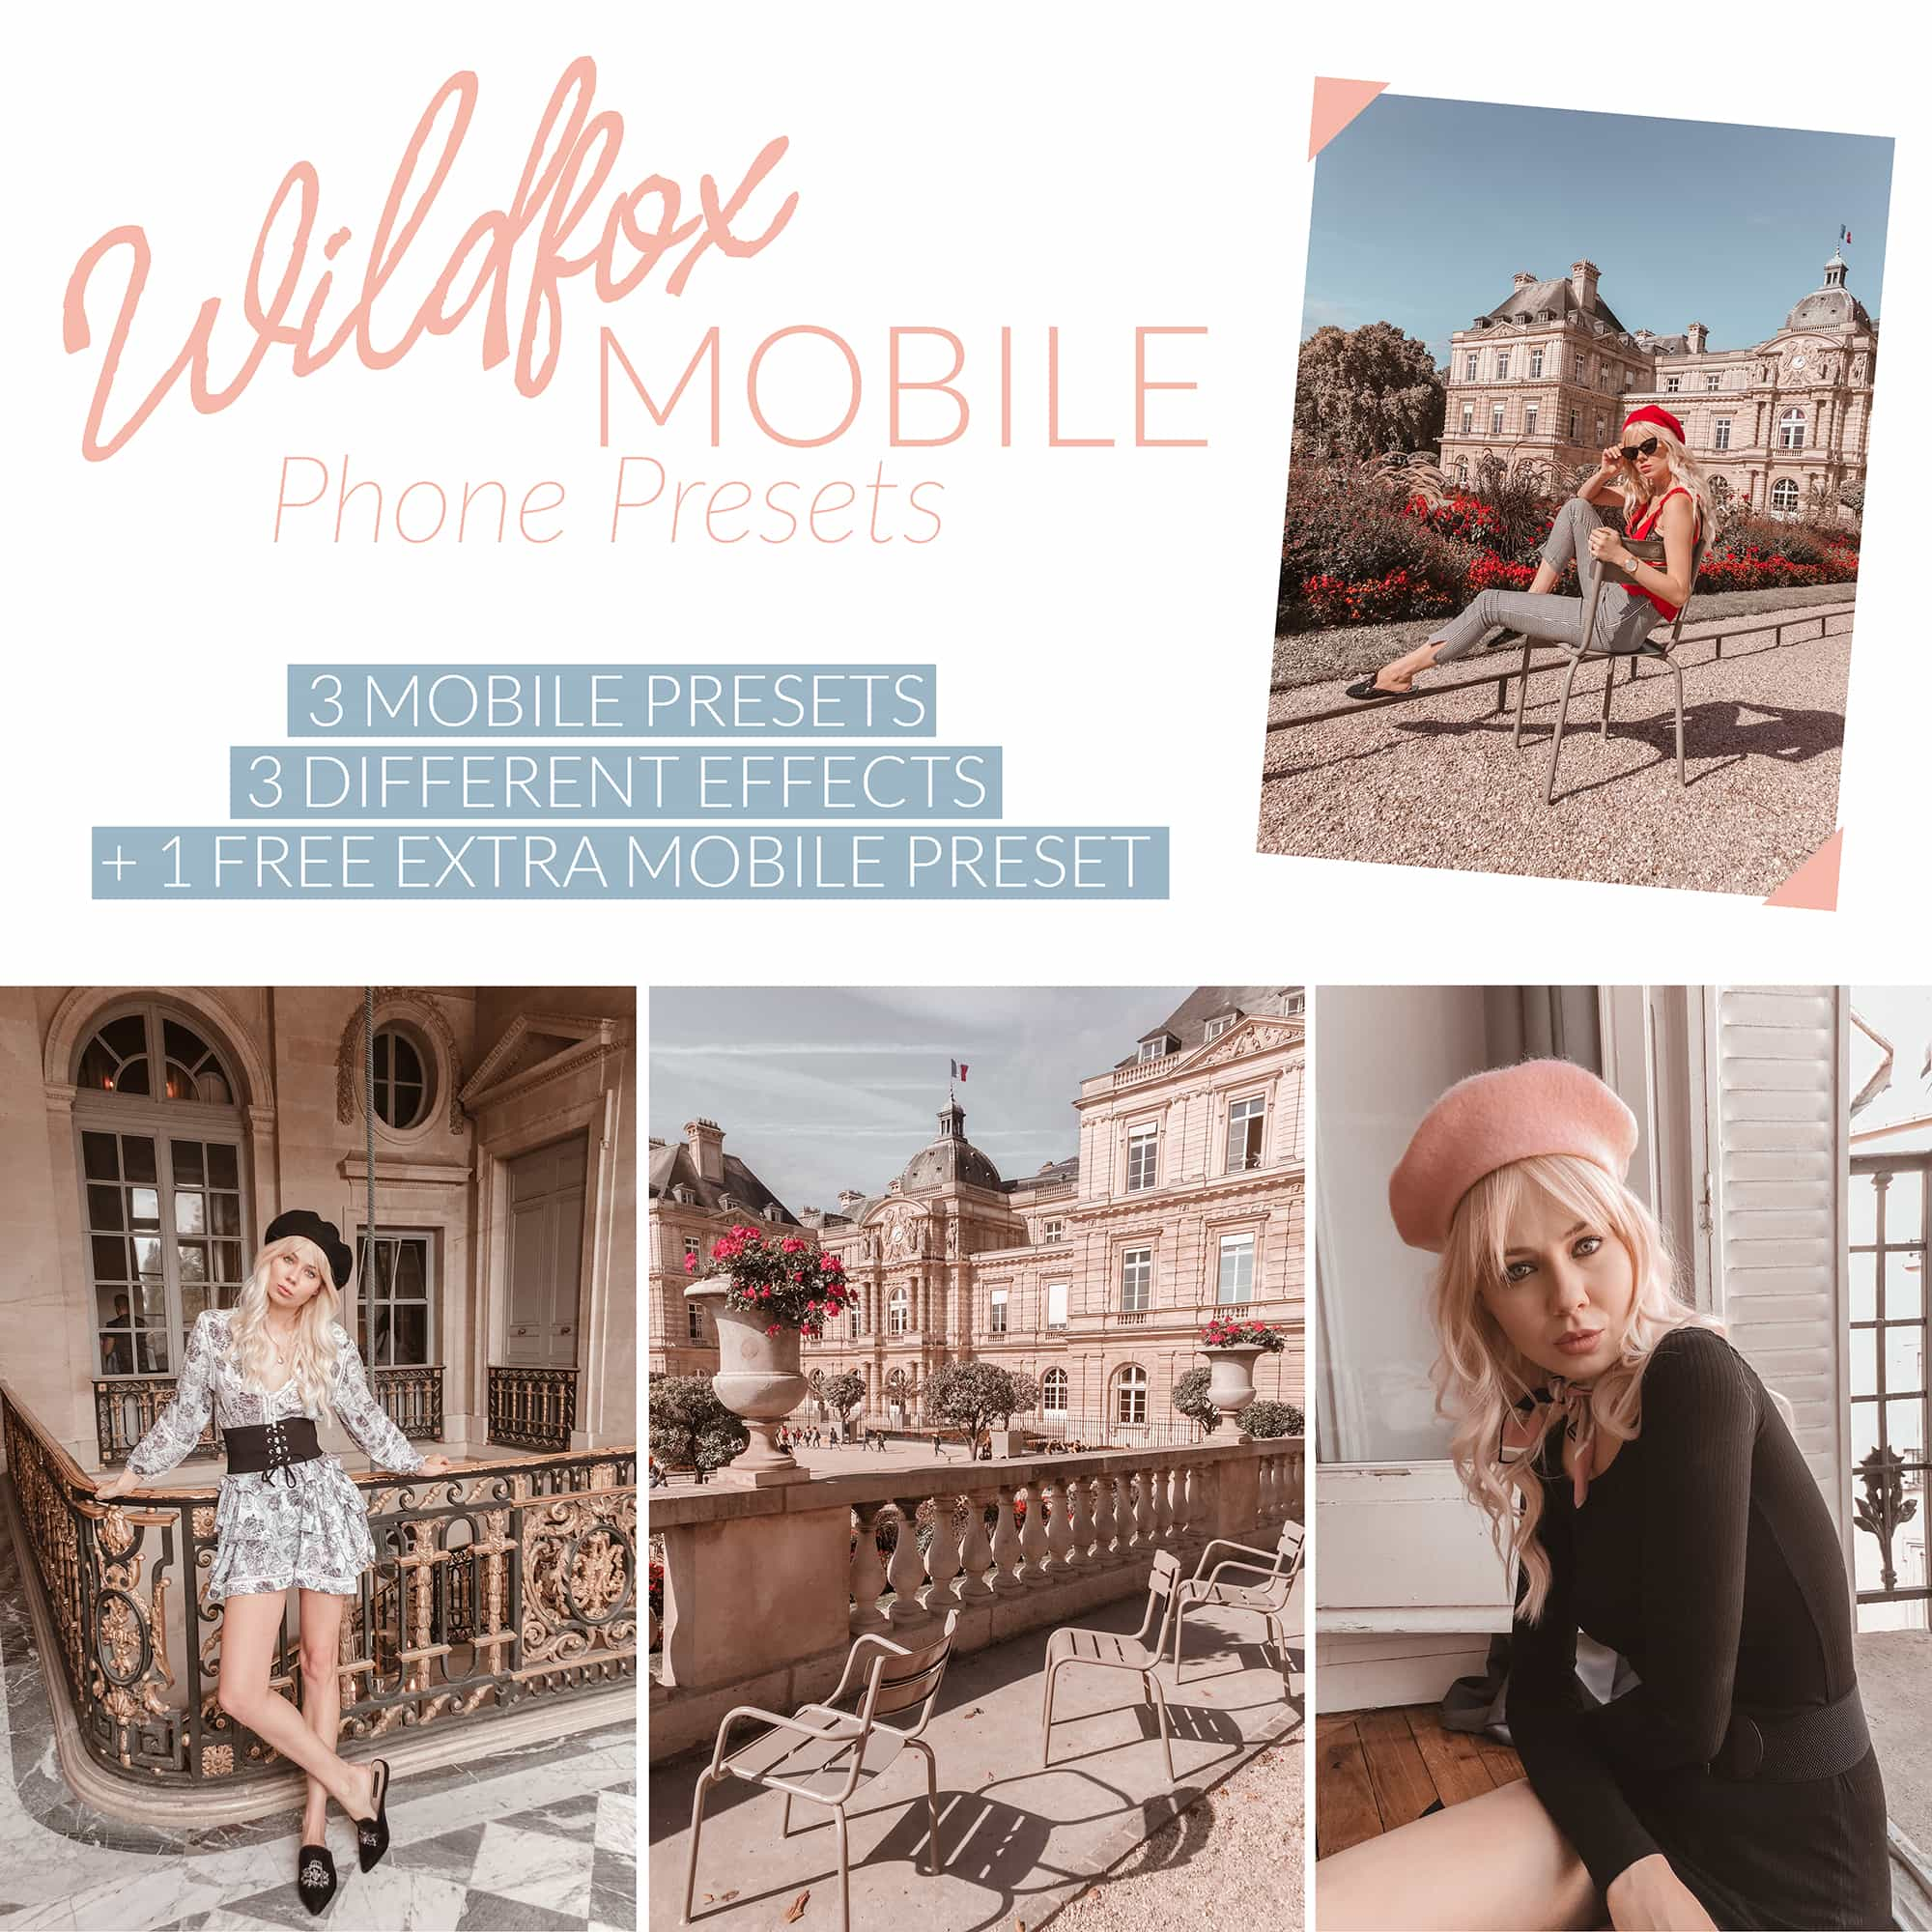 Sarah Loven Presets Wildfox Mobile Presets Pack.